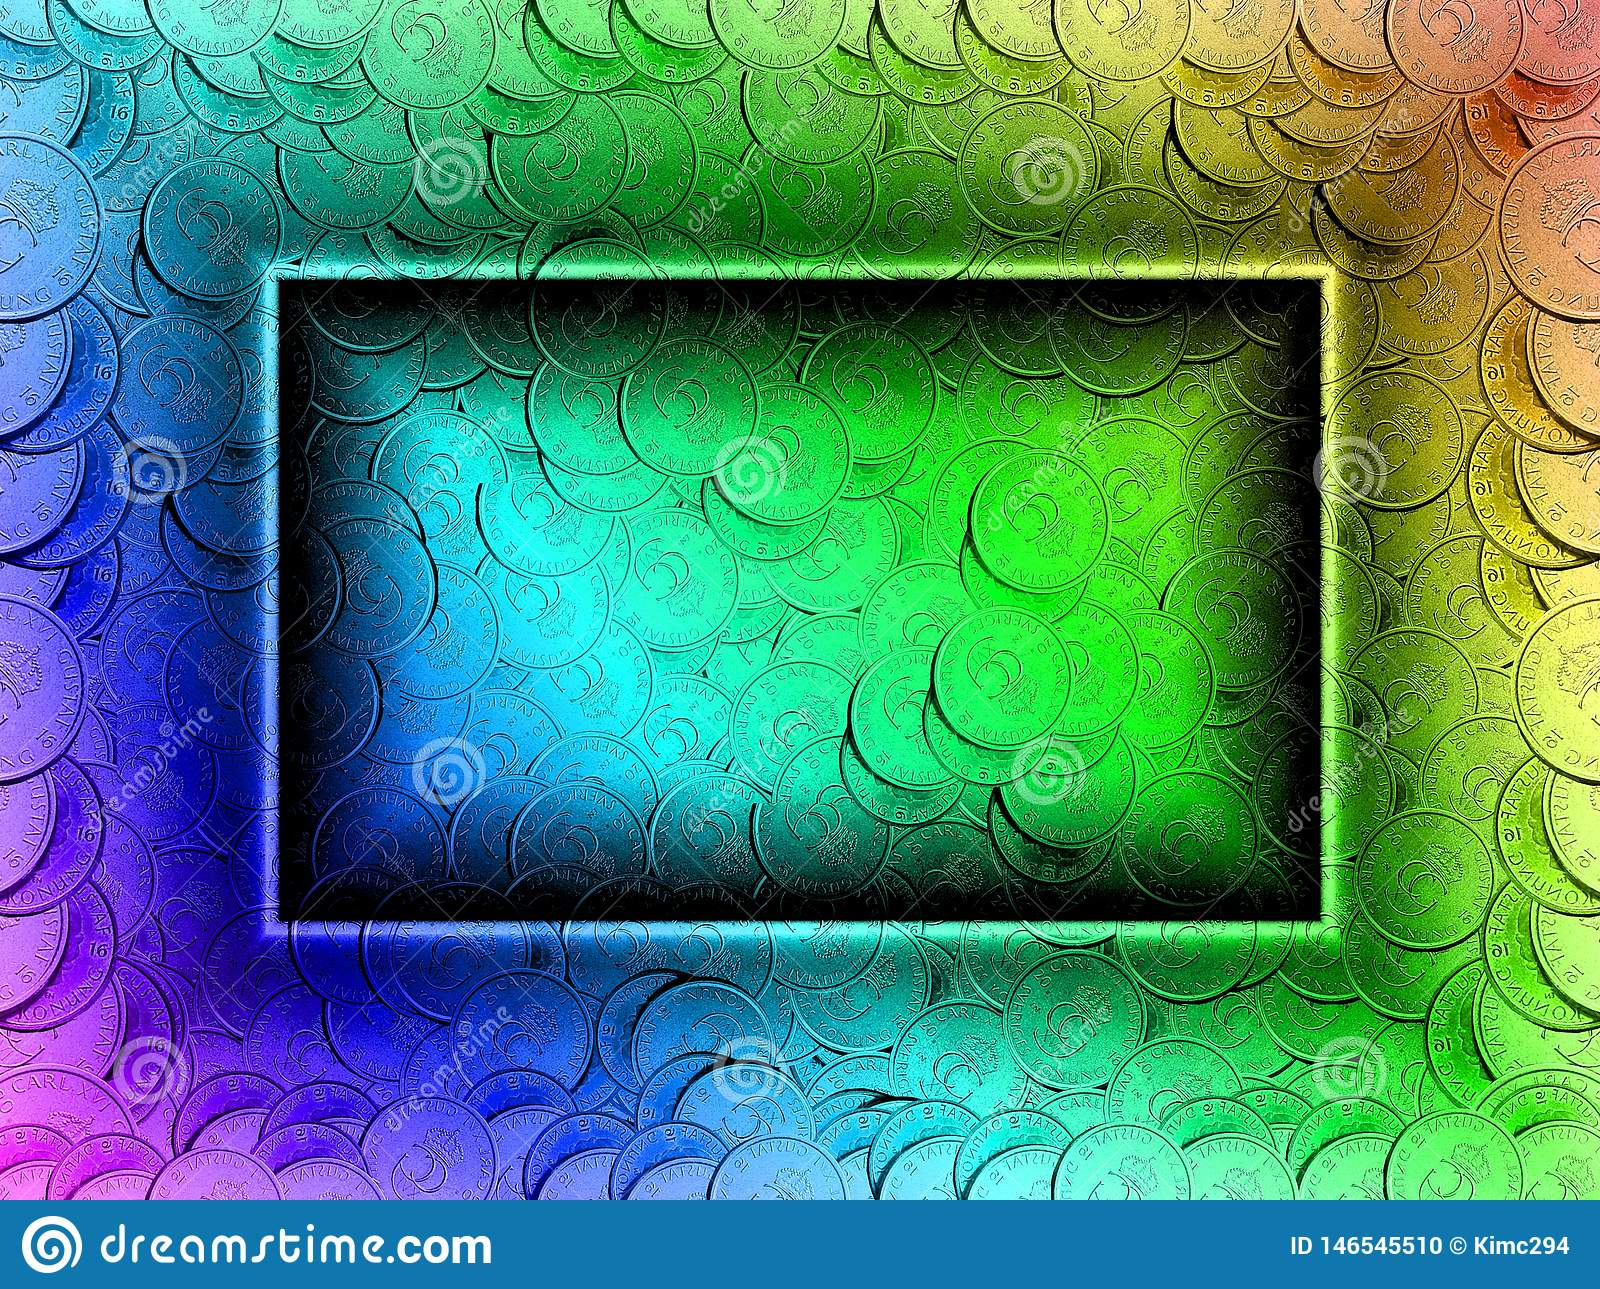 Coin filled background in rainbow colors. Swedish coins